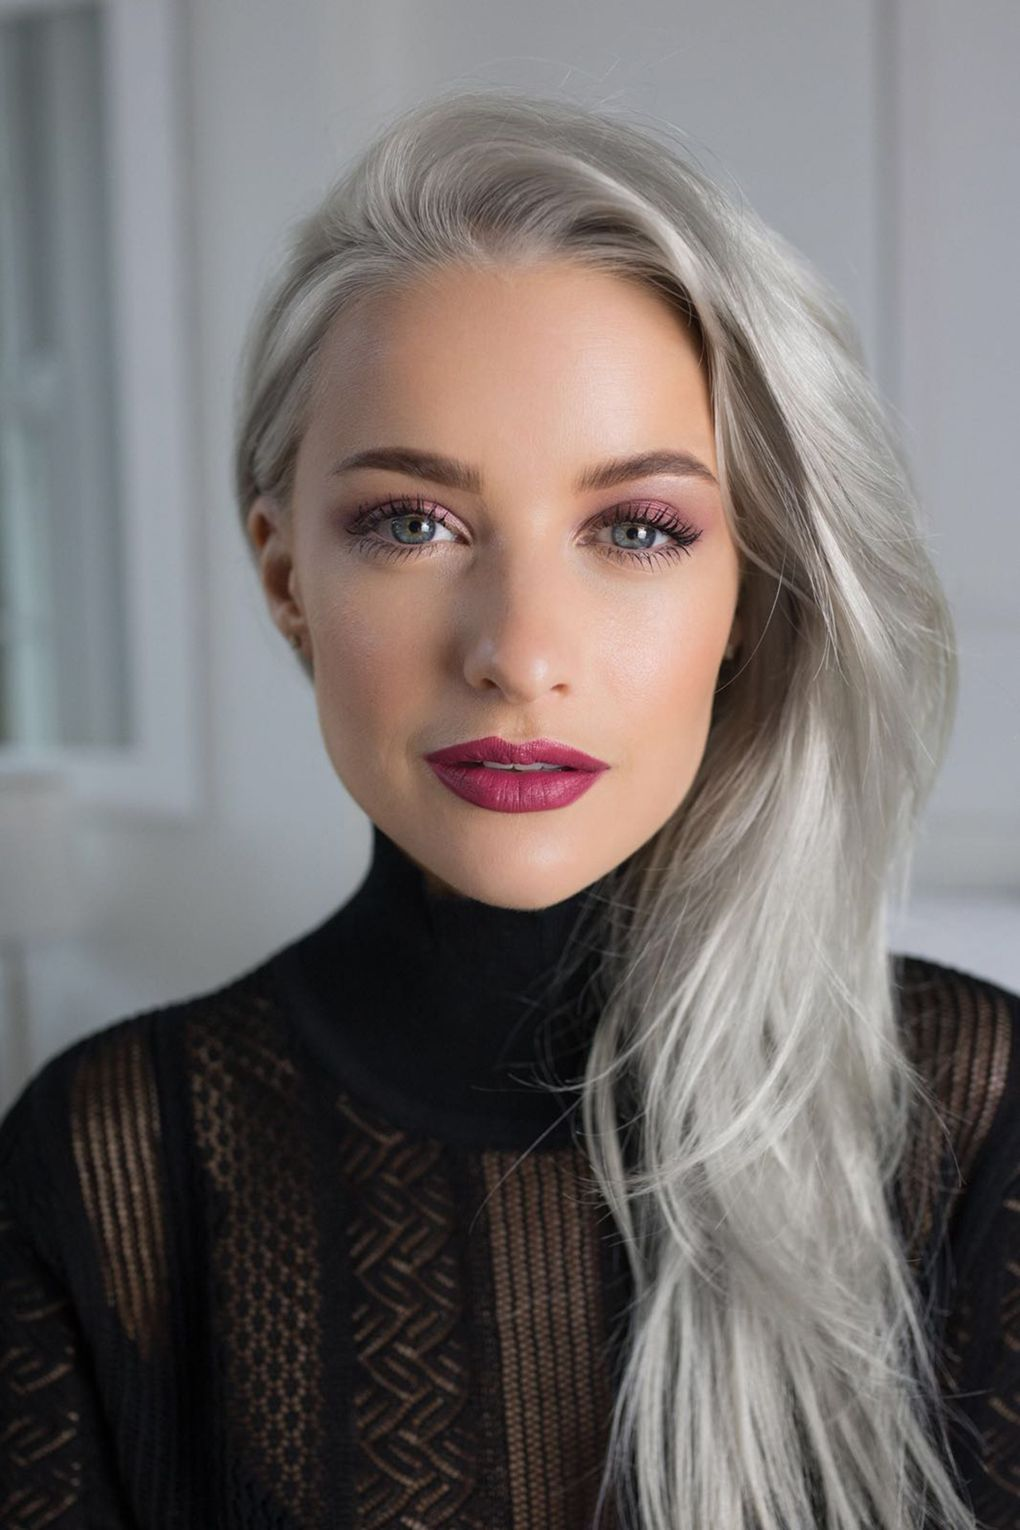 2020 New Gray Hair Wigs For African American Women Platinum Blonde Bob Smoky Grey Hair Best Professional Hair Color To Cover Gray 24 Inch Wig Silver Gray Hair Color